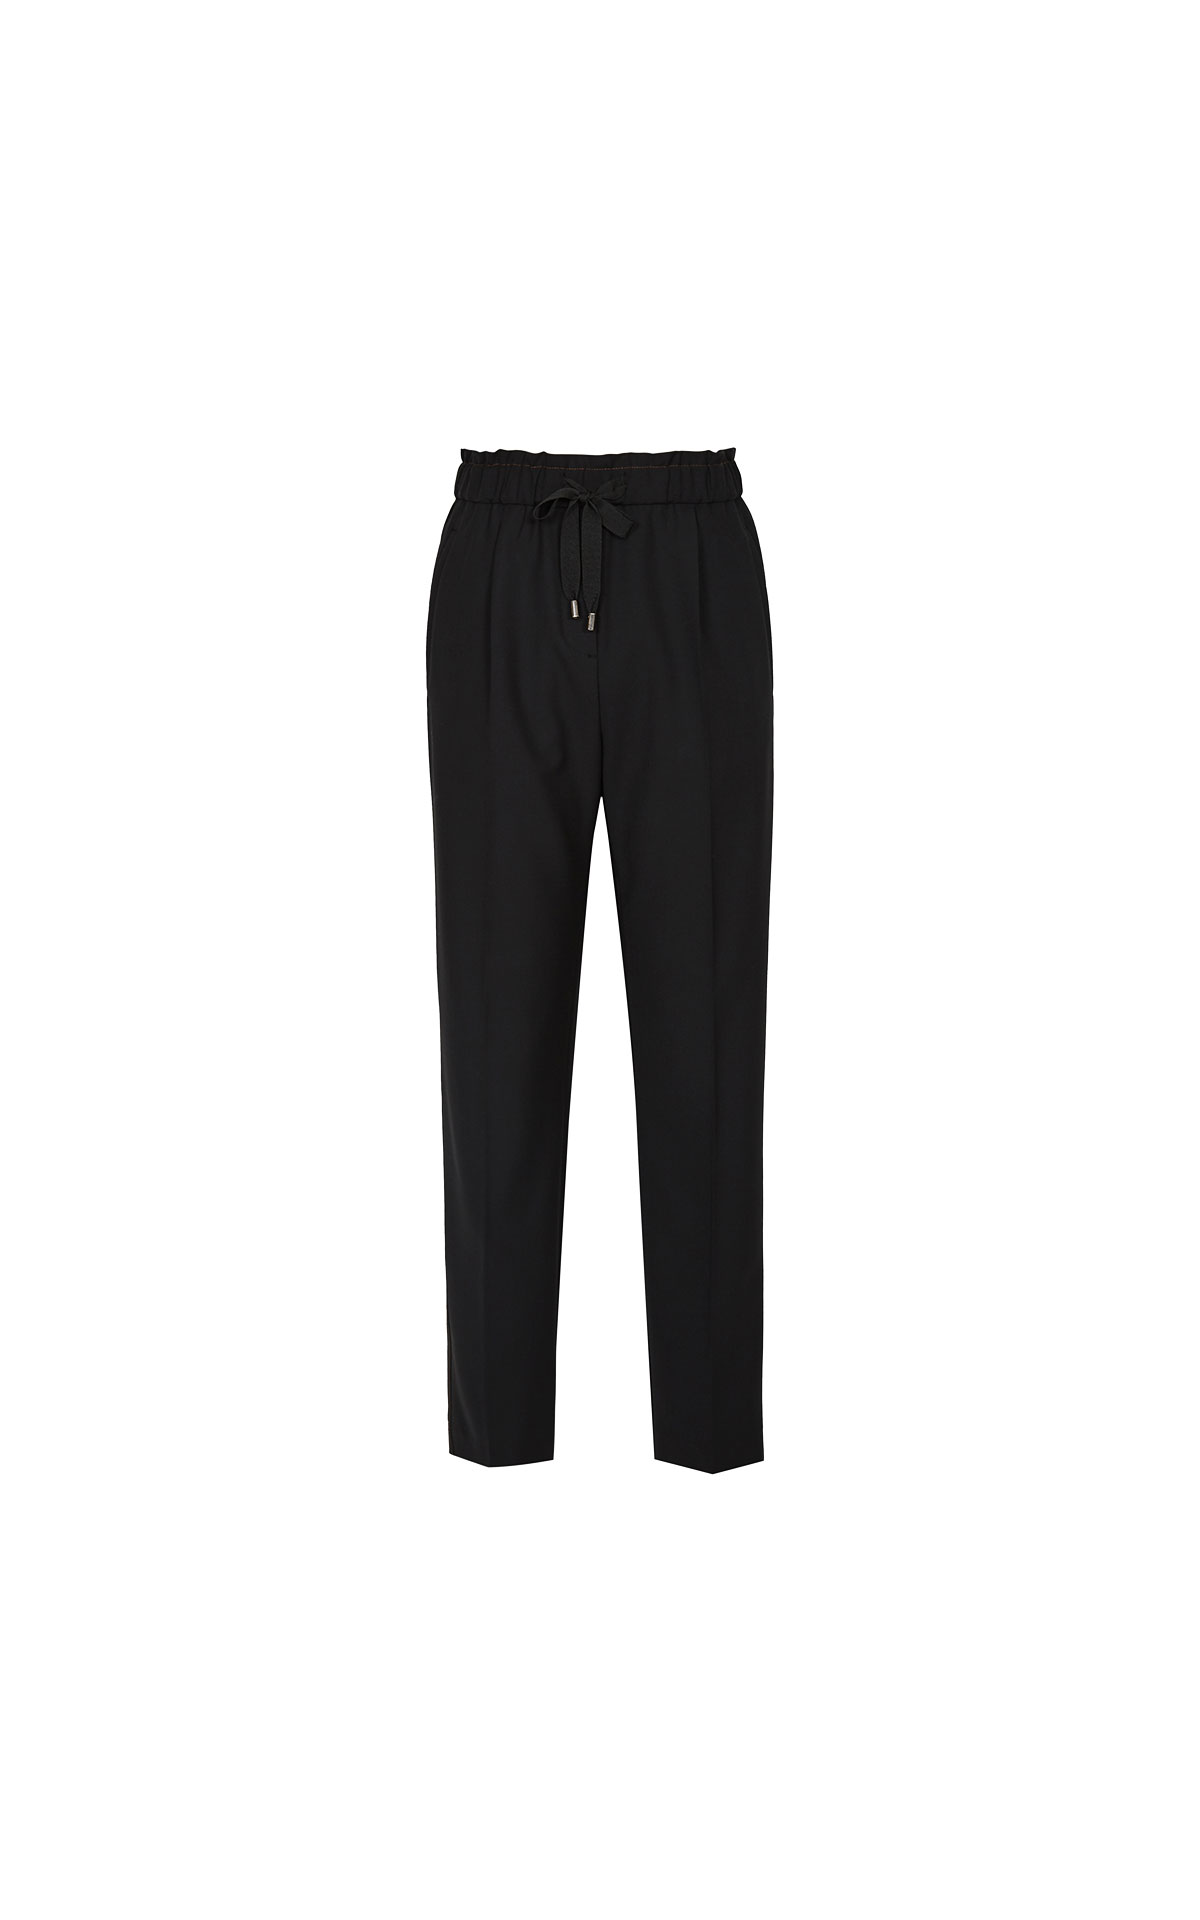 Reiss Perry pull on trousers from Bicester Village